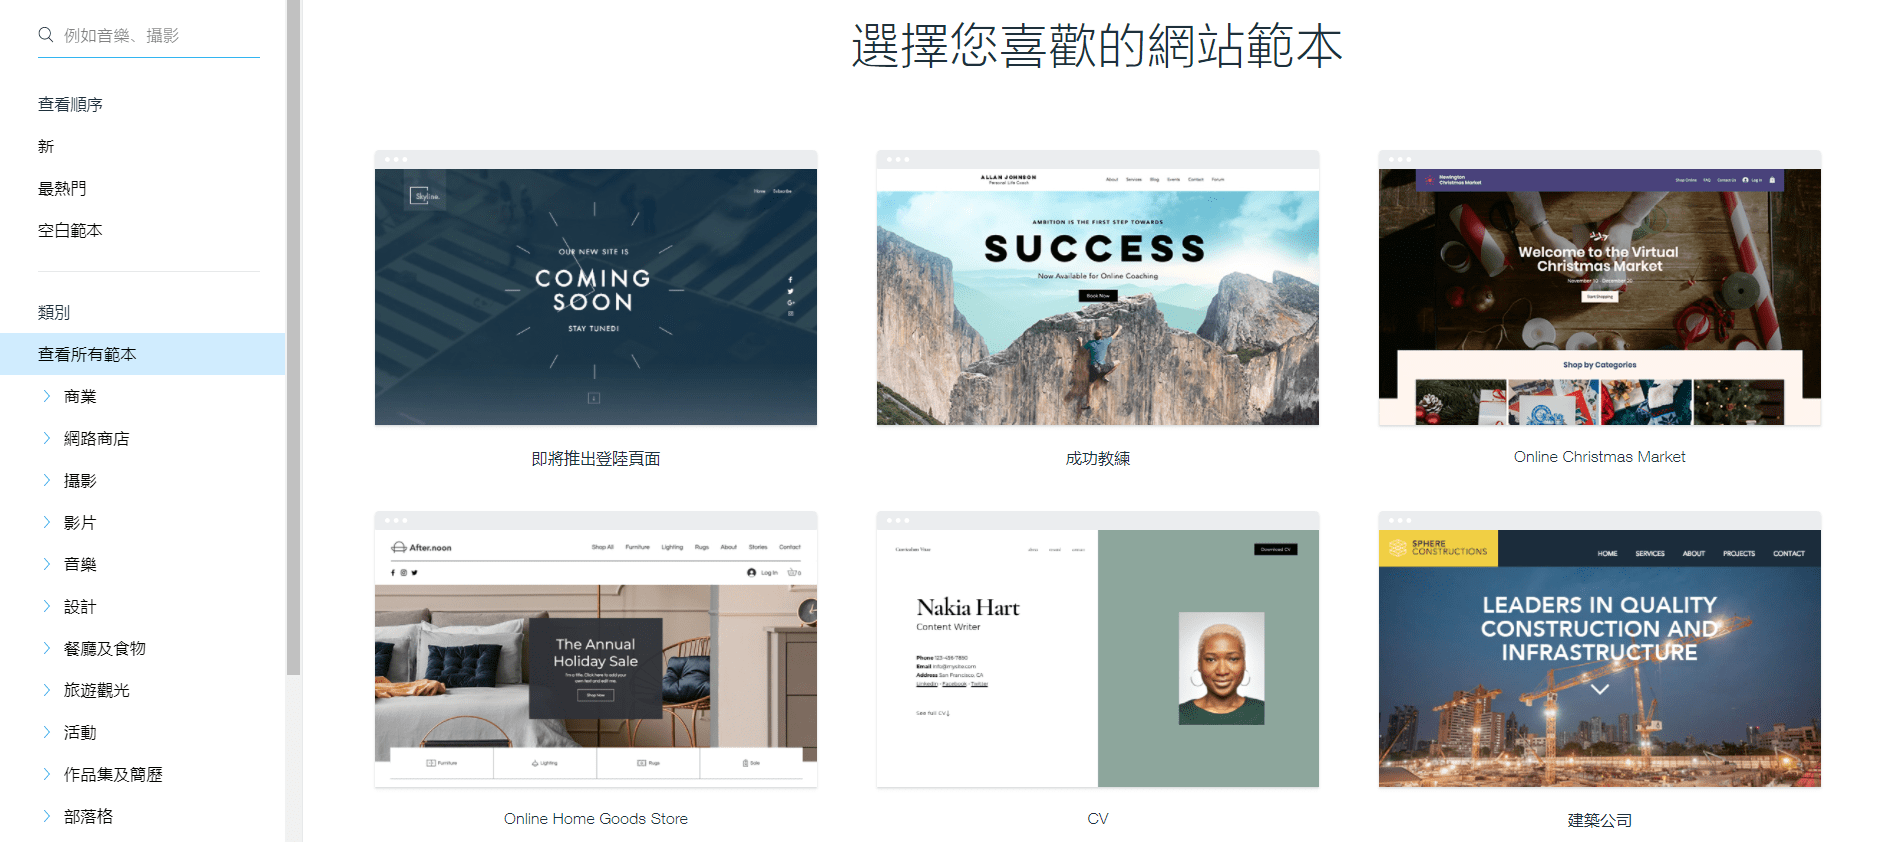 The Wix template library